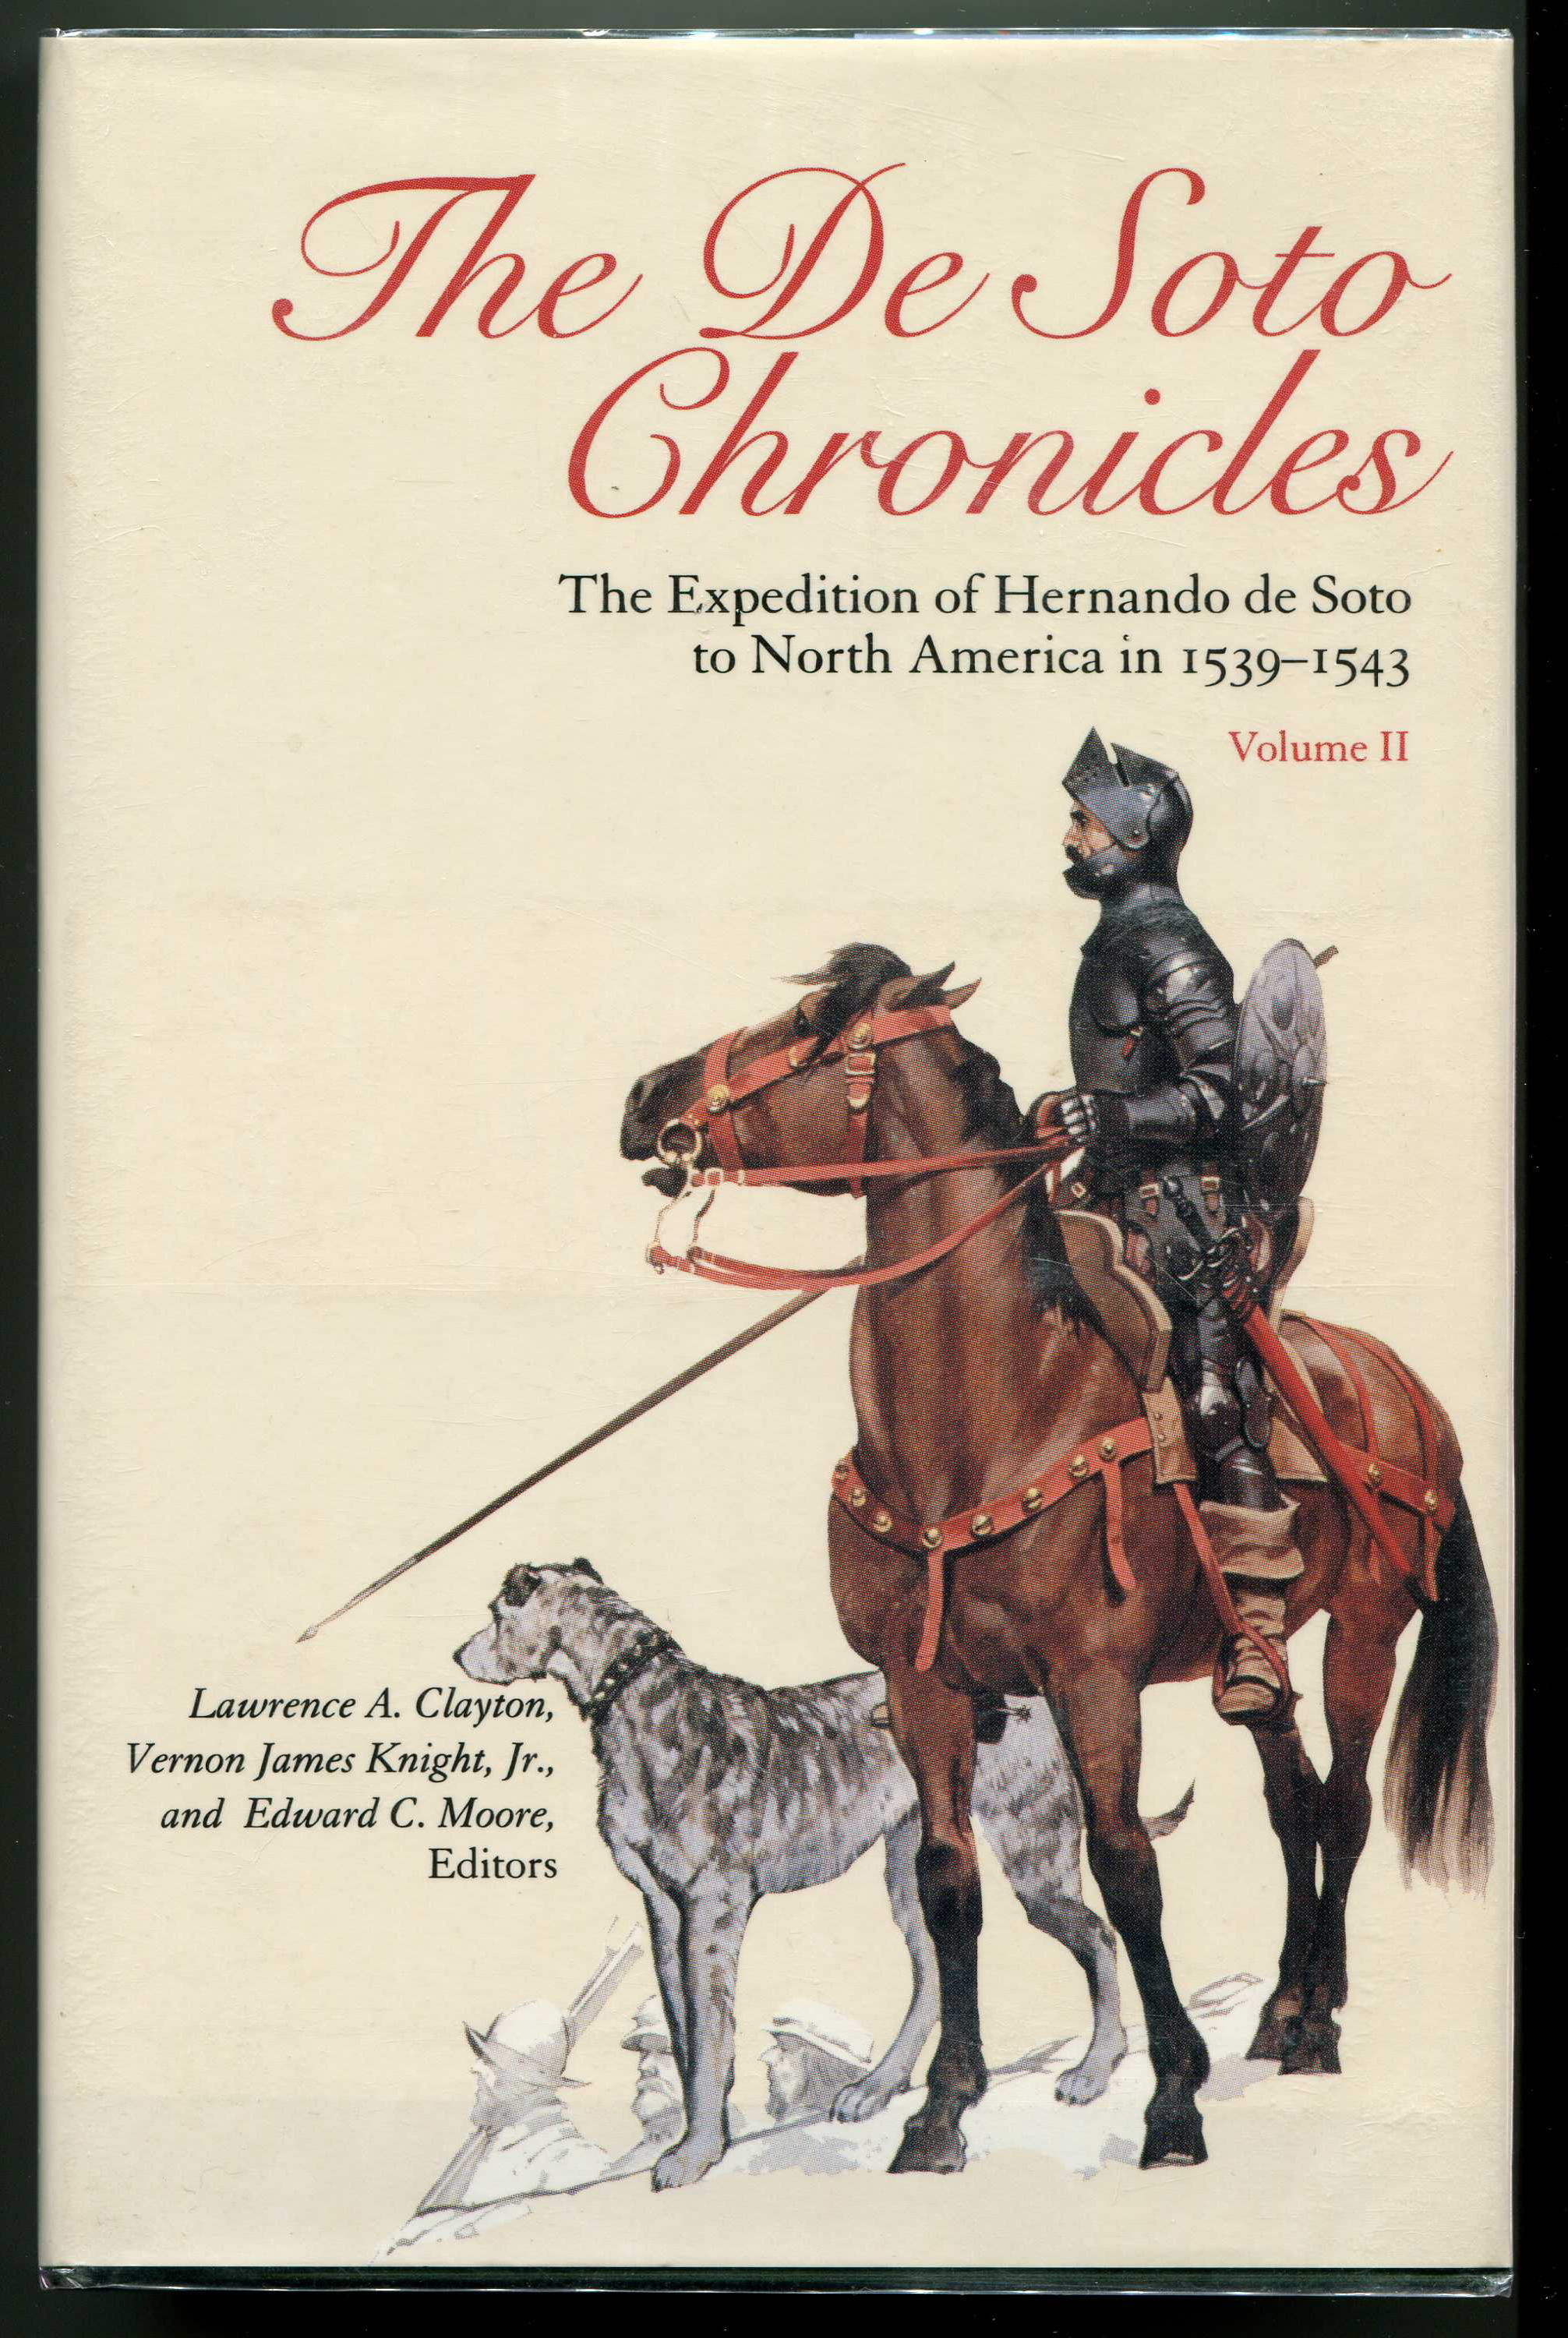 Image for The De Soto Chronicles: The Expedition of Hernando de Soto to North America in 1539-1543, Volumes 1 & 2